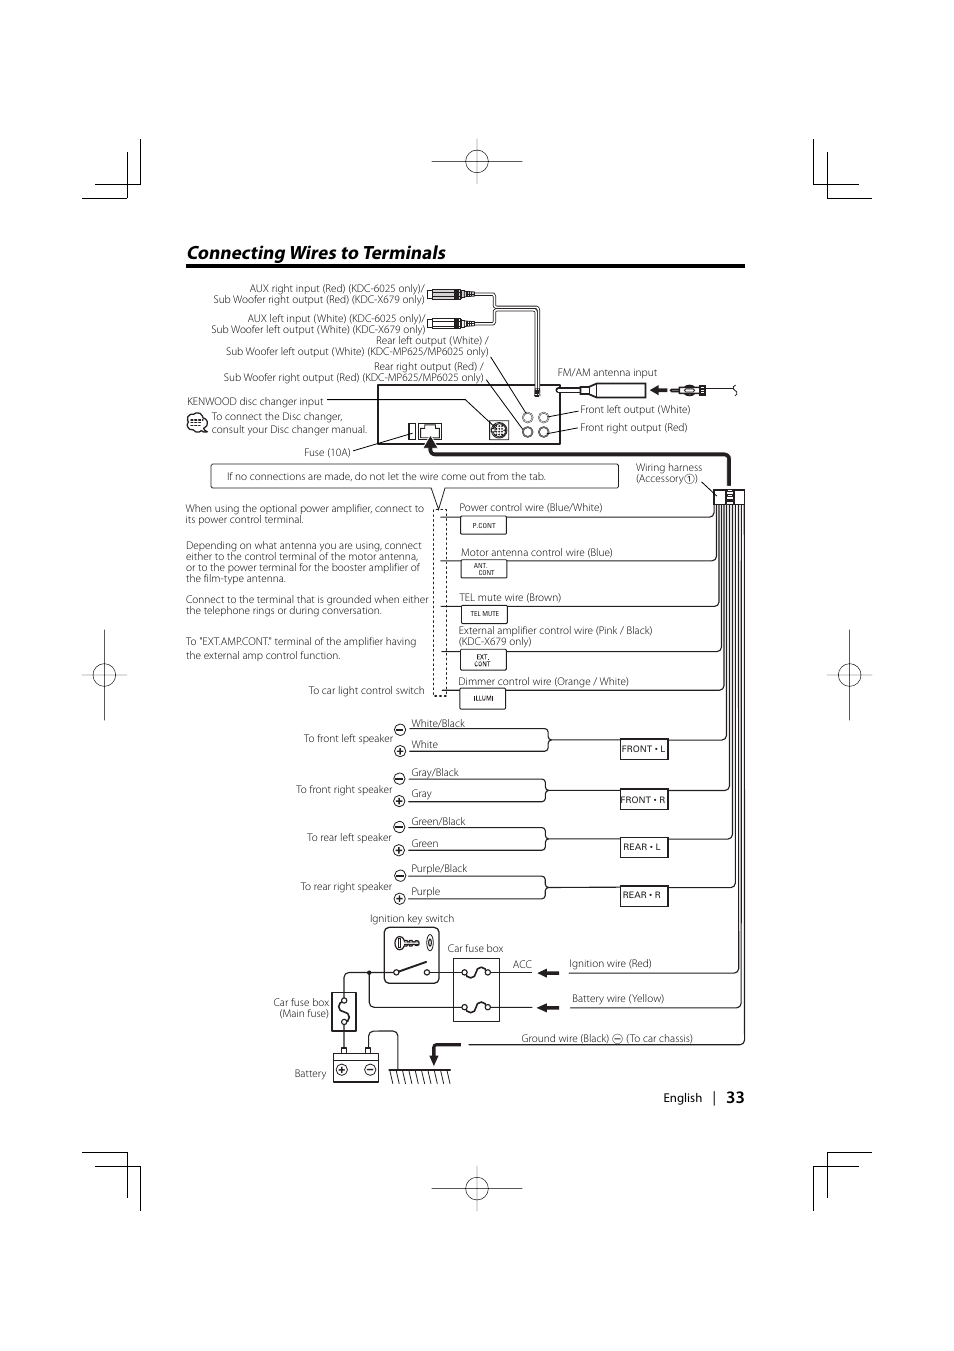 Connecting wires to terminals Kenwood KDCMP6025 User Manual